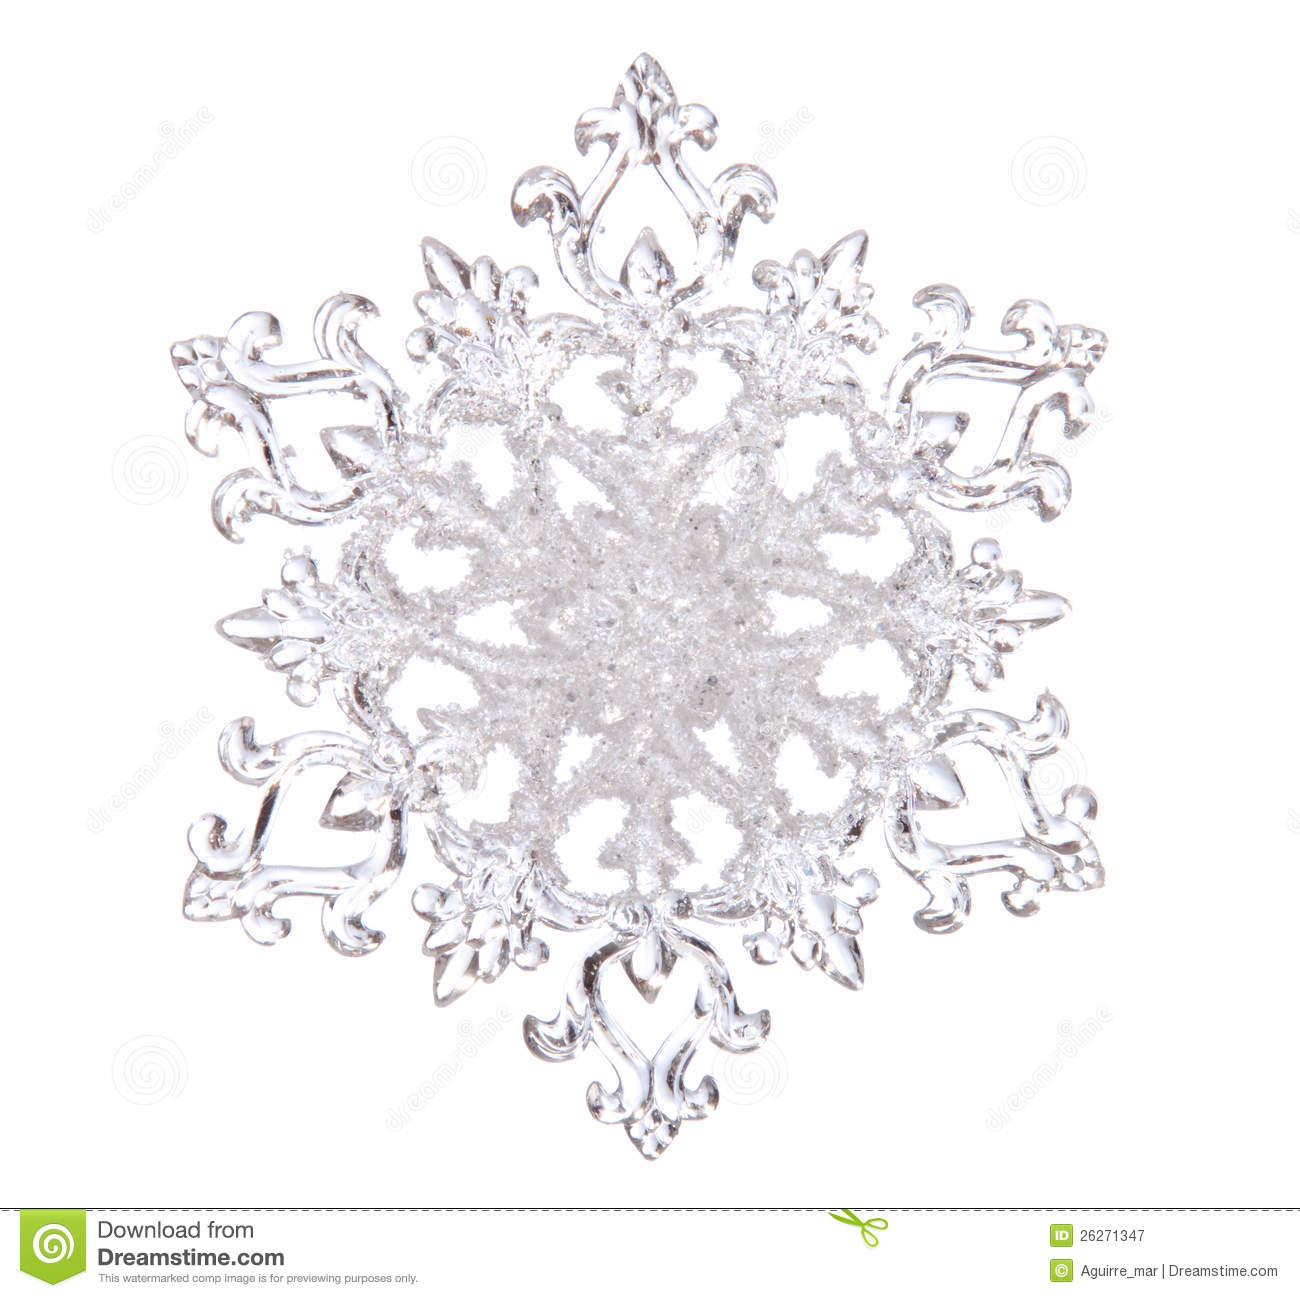 Snowflake Clipart Transparent Background Snowflake shape  photo on theWhite Snowflake Transparent Background